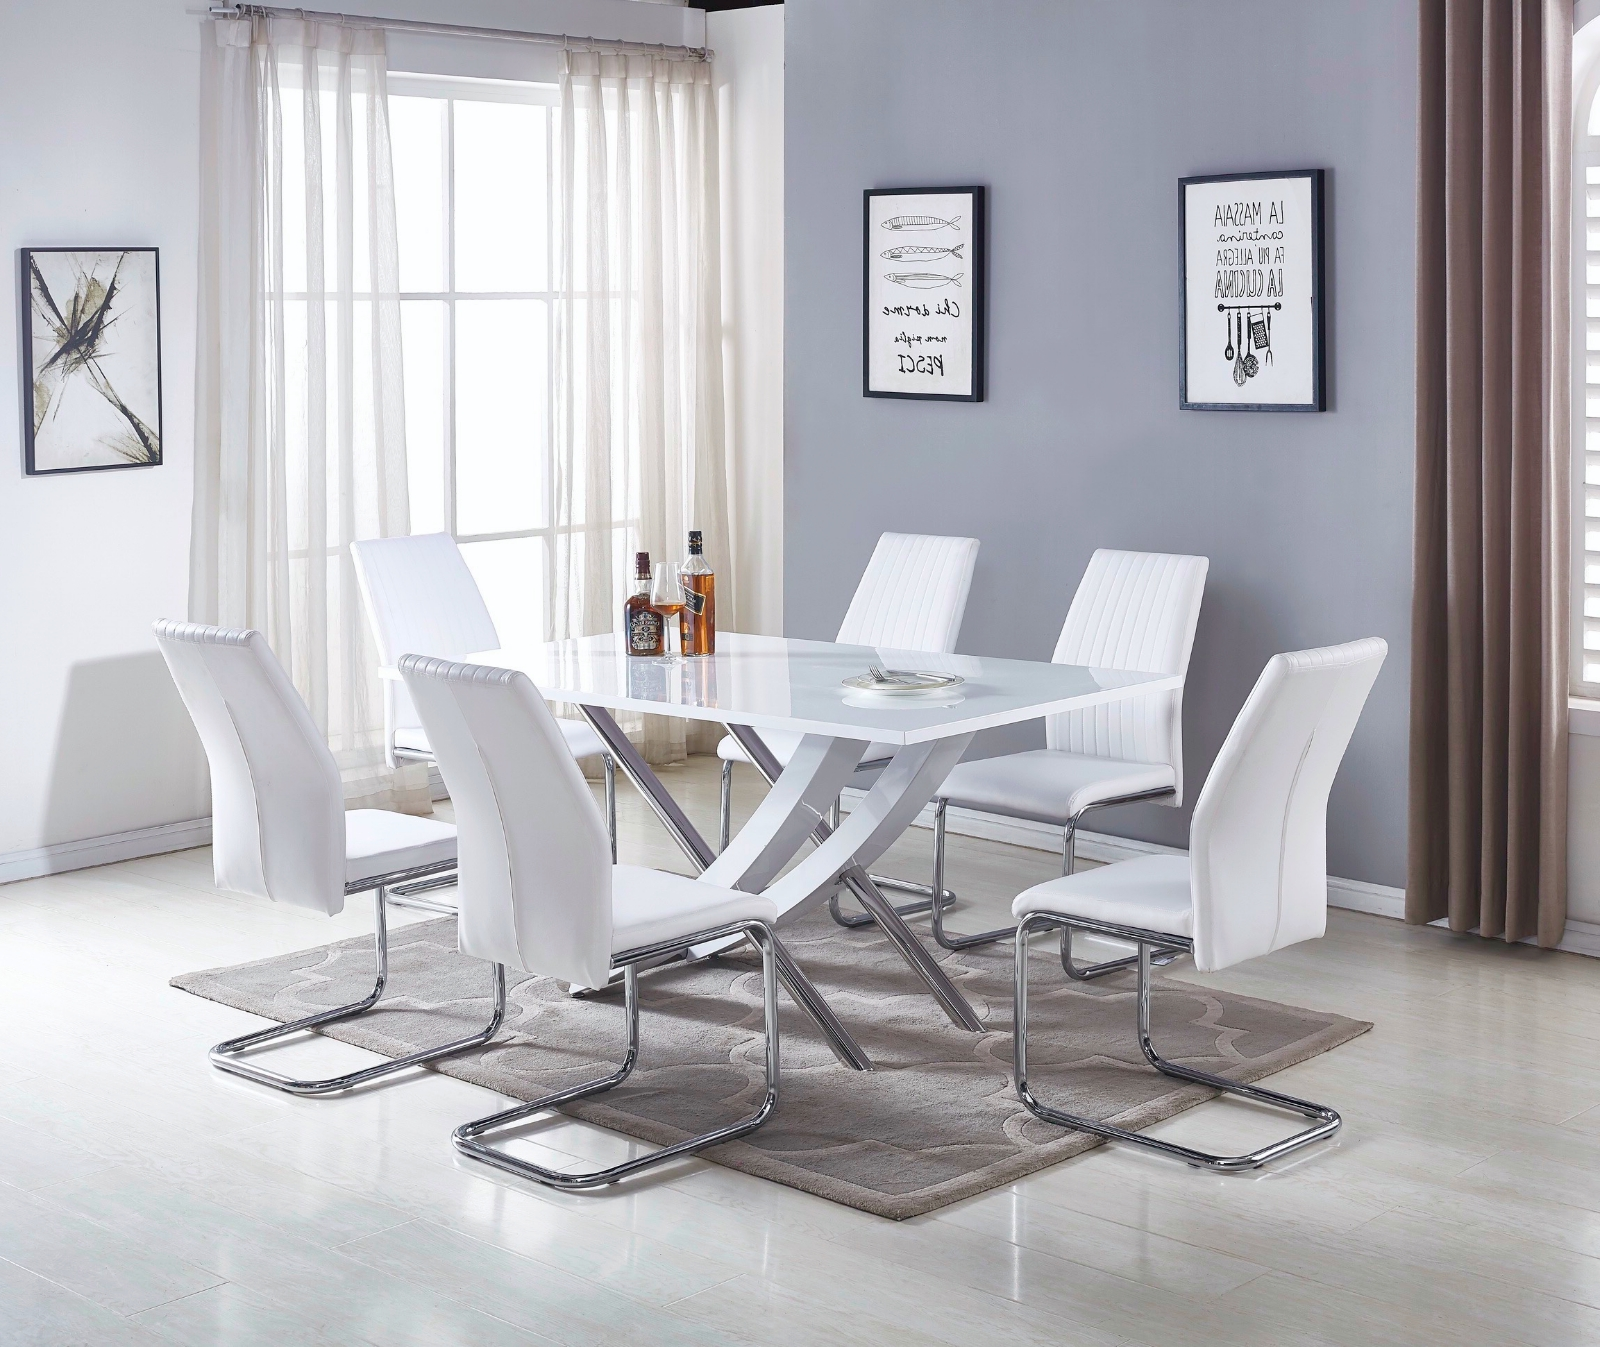 Mayfair White Grey High Gloss Chrome Dining Table Set And 6 Leather Pertaining To Recent Mayfair Dining Tables (View 18 of 25)